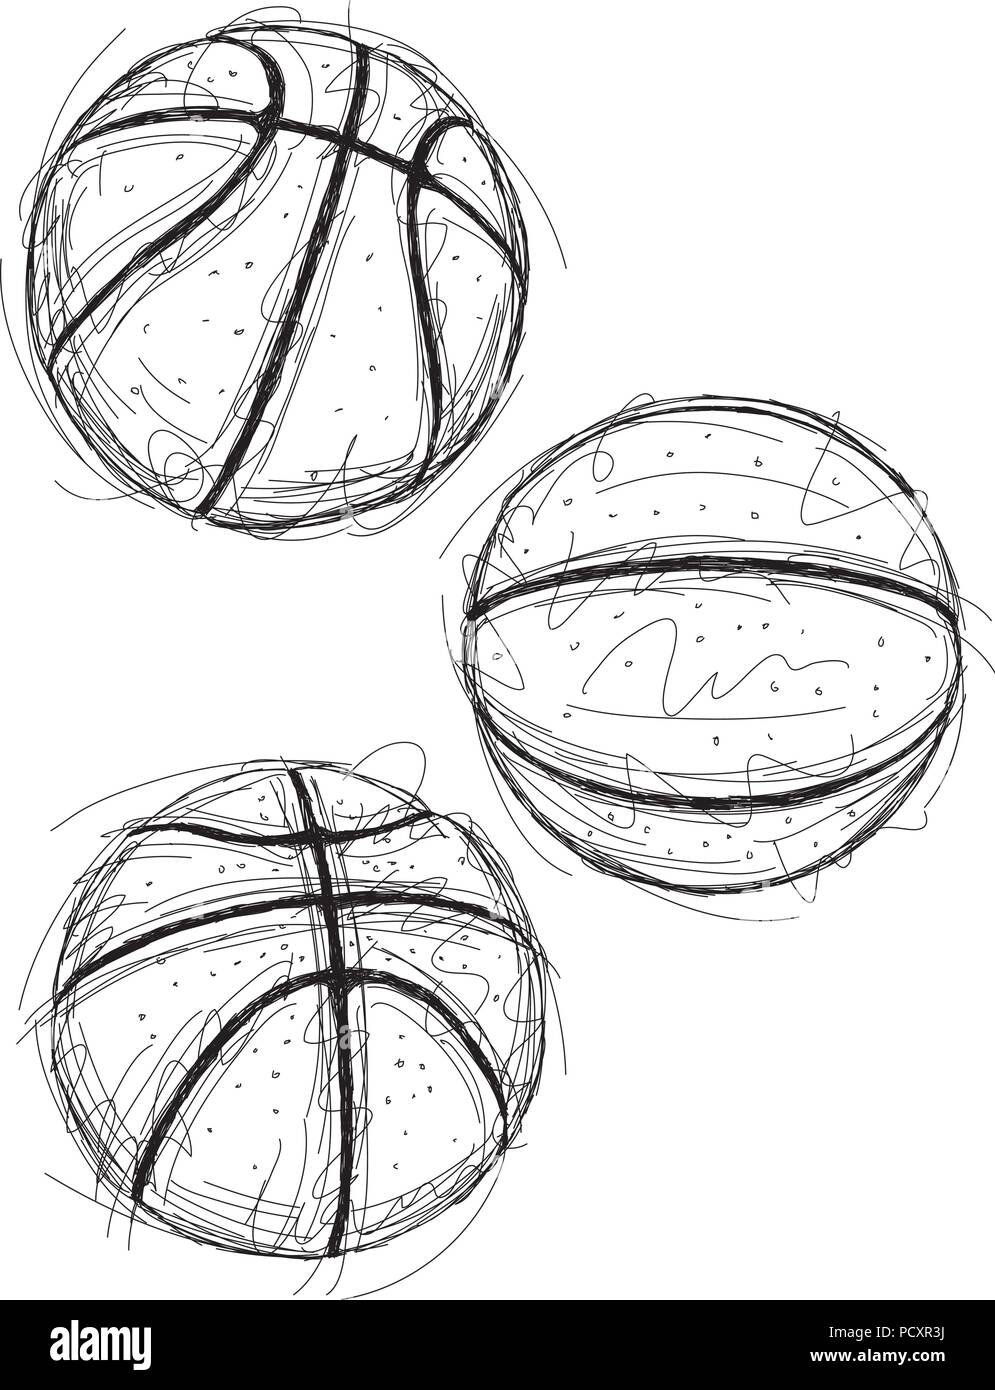 Basketball sketches - Stock Image